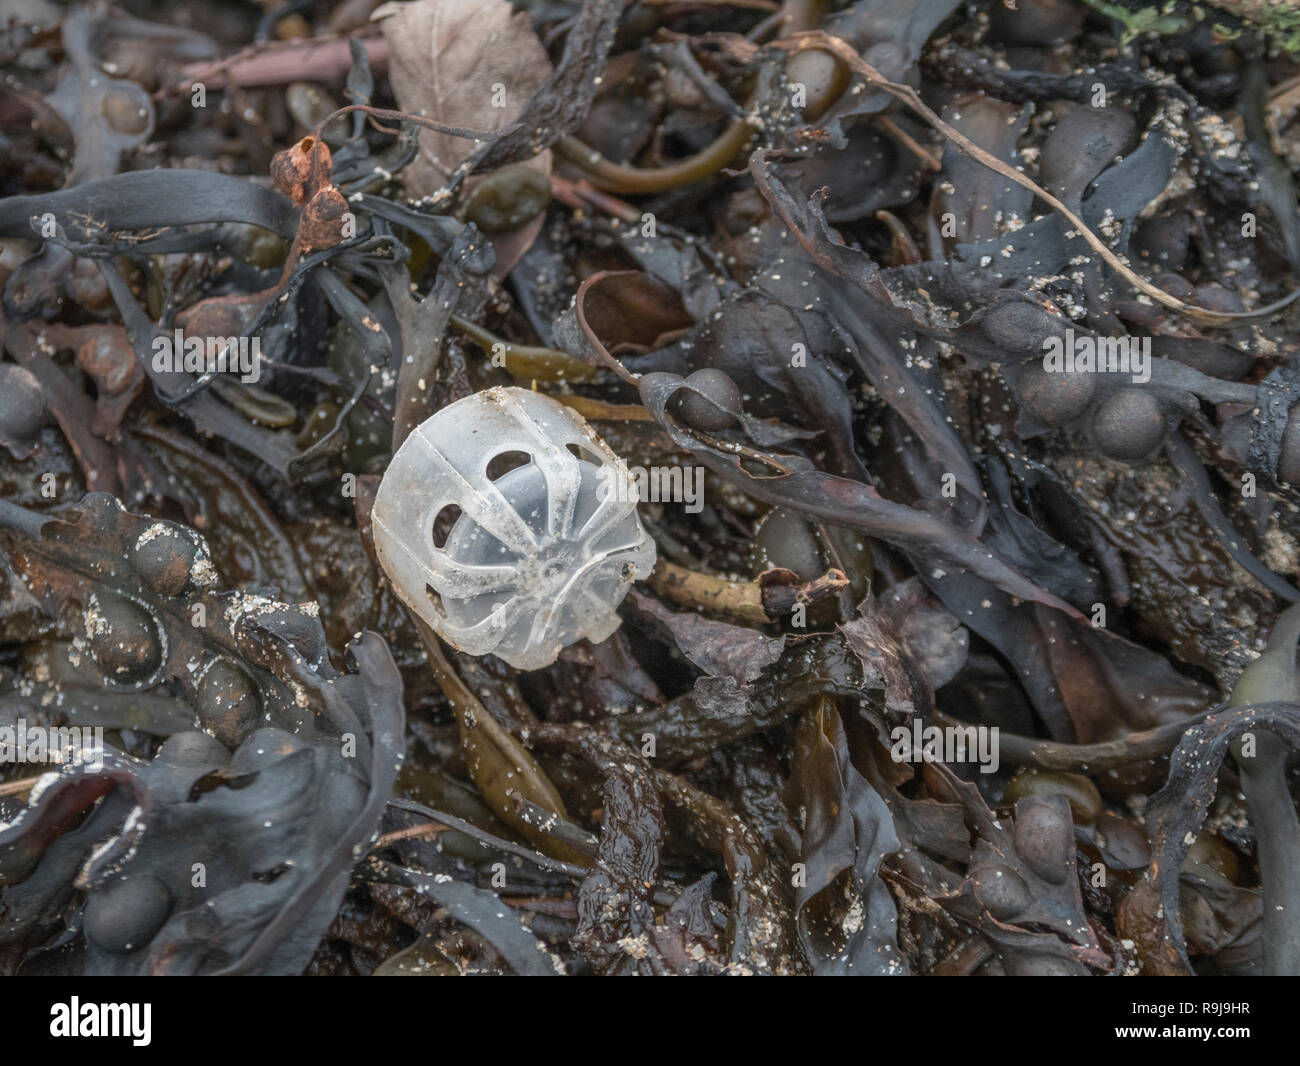 Part of plastic bottle washed up on shore & polluting the shoreline. Metaphor plastic pollution, environmental pollution, war on plastic. - Stock Image